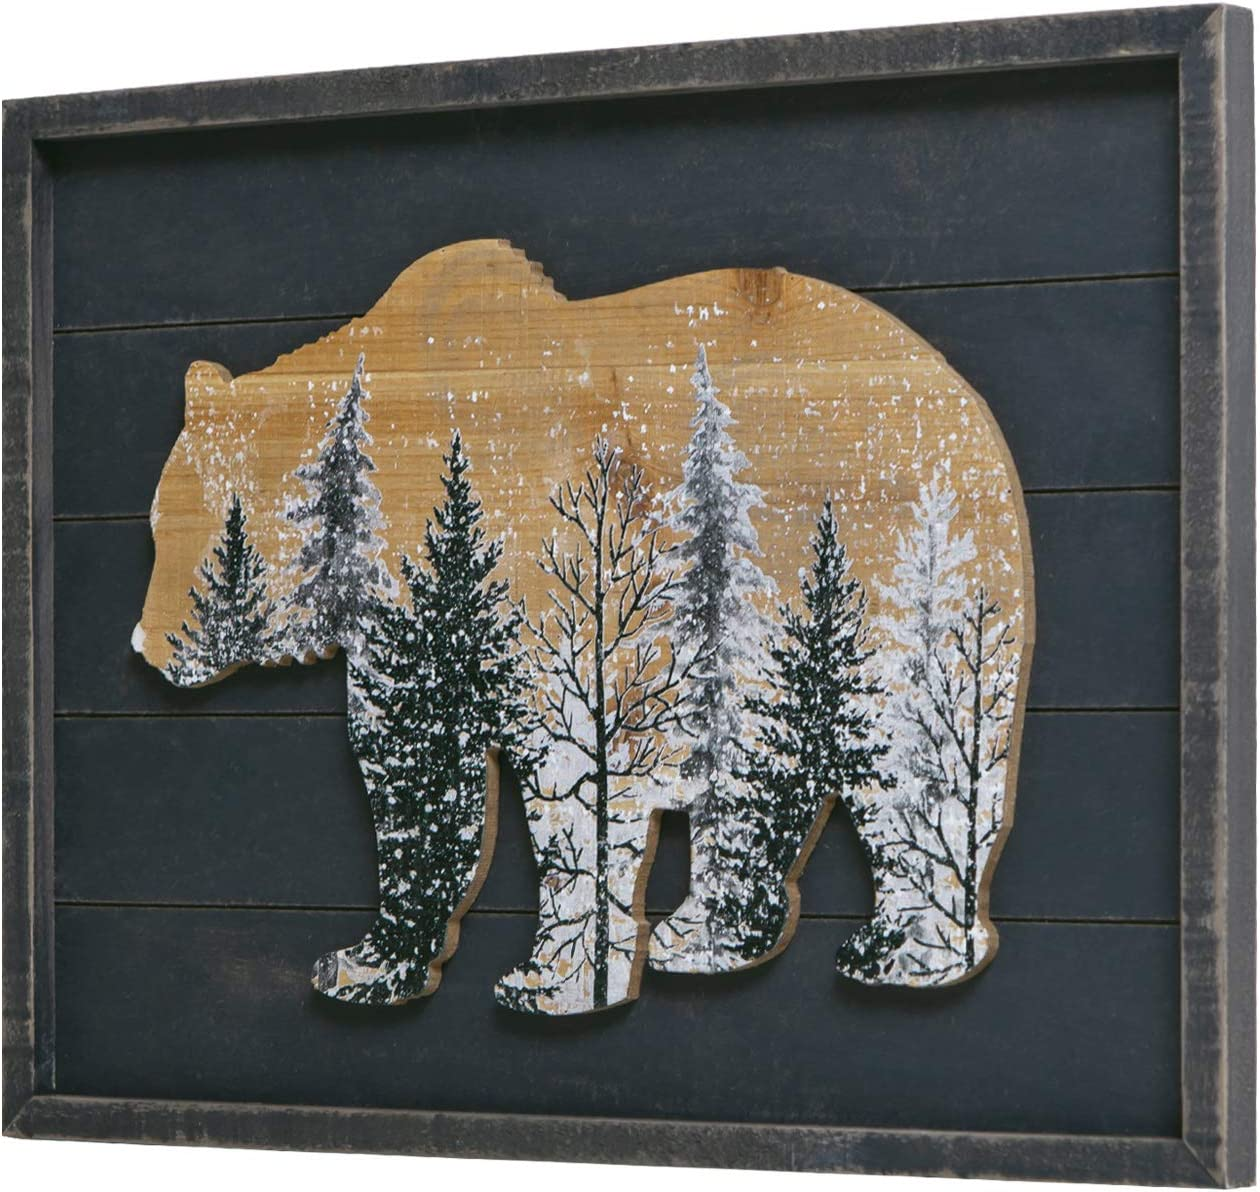 NIKKY HOME Cabin Bear Decor, Rustic Wooden Forest Mountain Woodland Wildlife Lodge Animal Picture Wall Art Bathroom Decor, 12 x 16 Inches